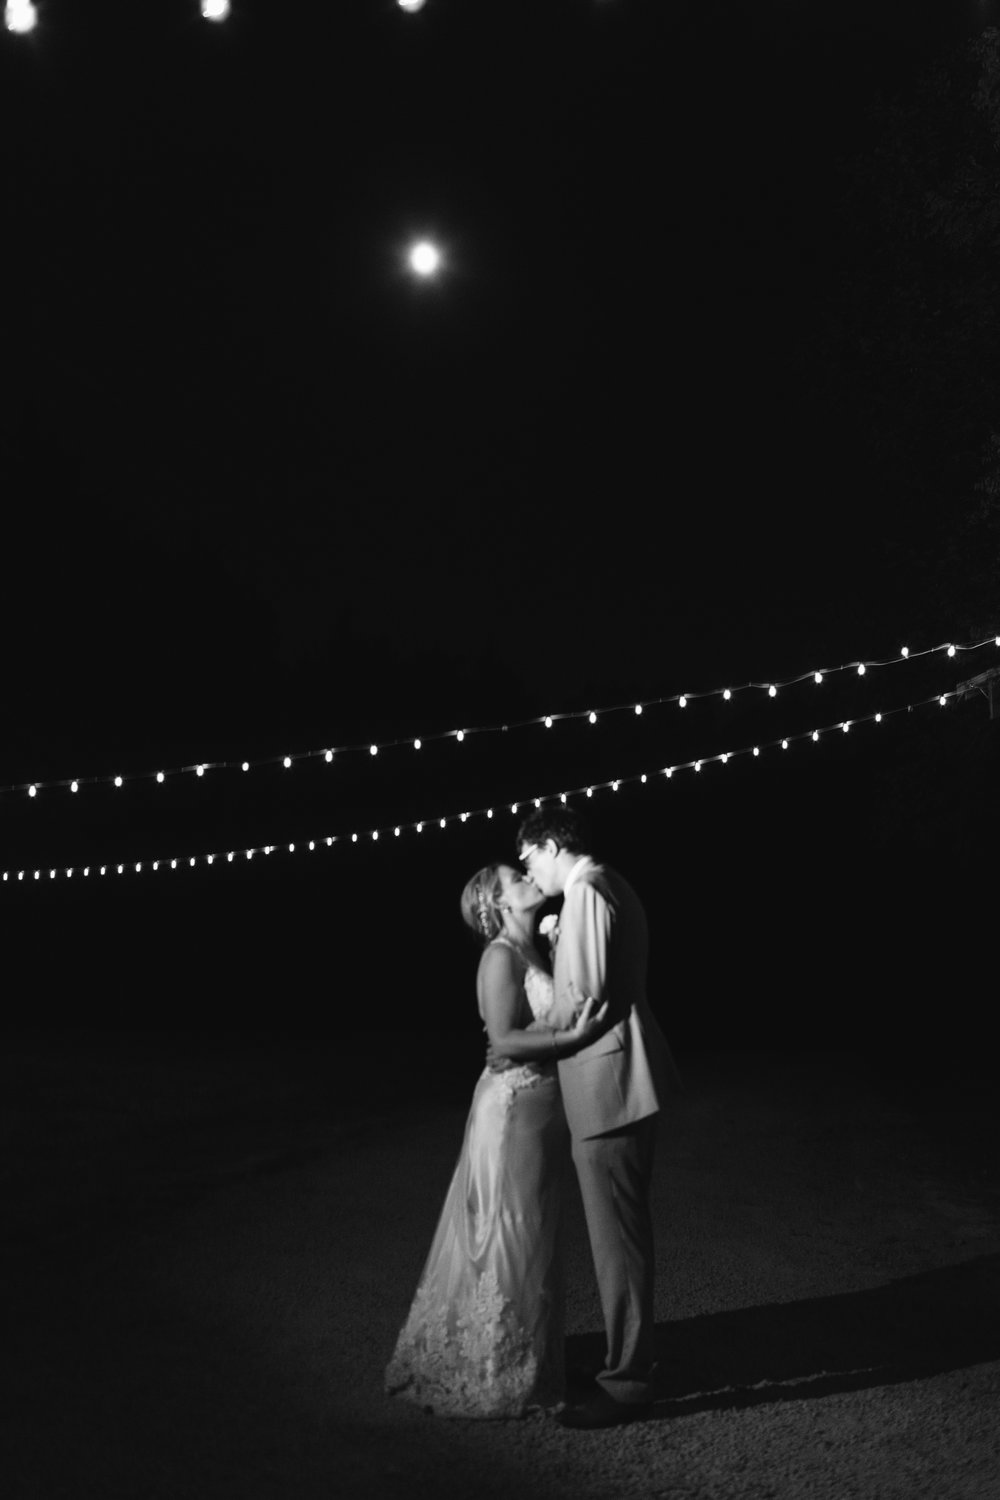 Abby_Simon_Wedding_Abigail_Malone_Photography_nashville_Bloomsbury_Farm-650.jpg